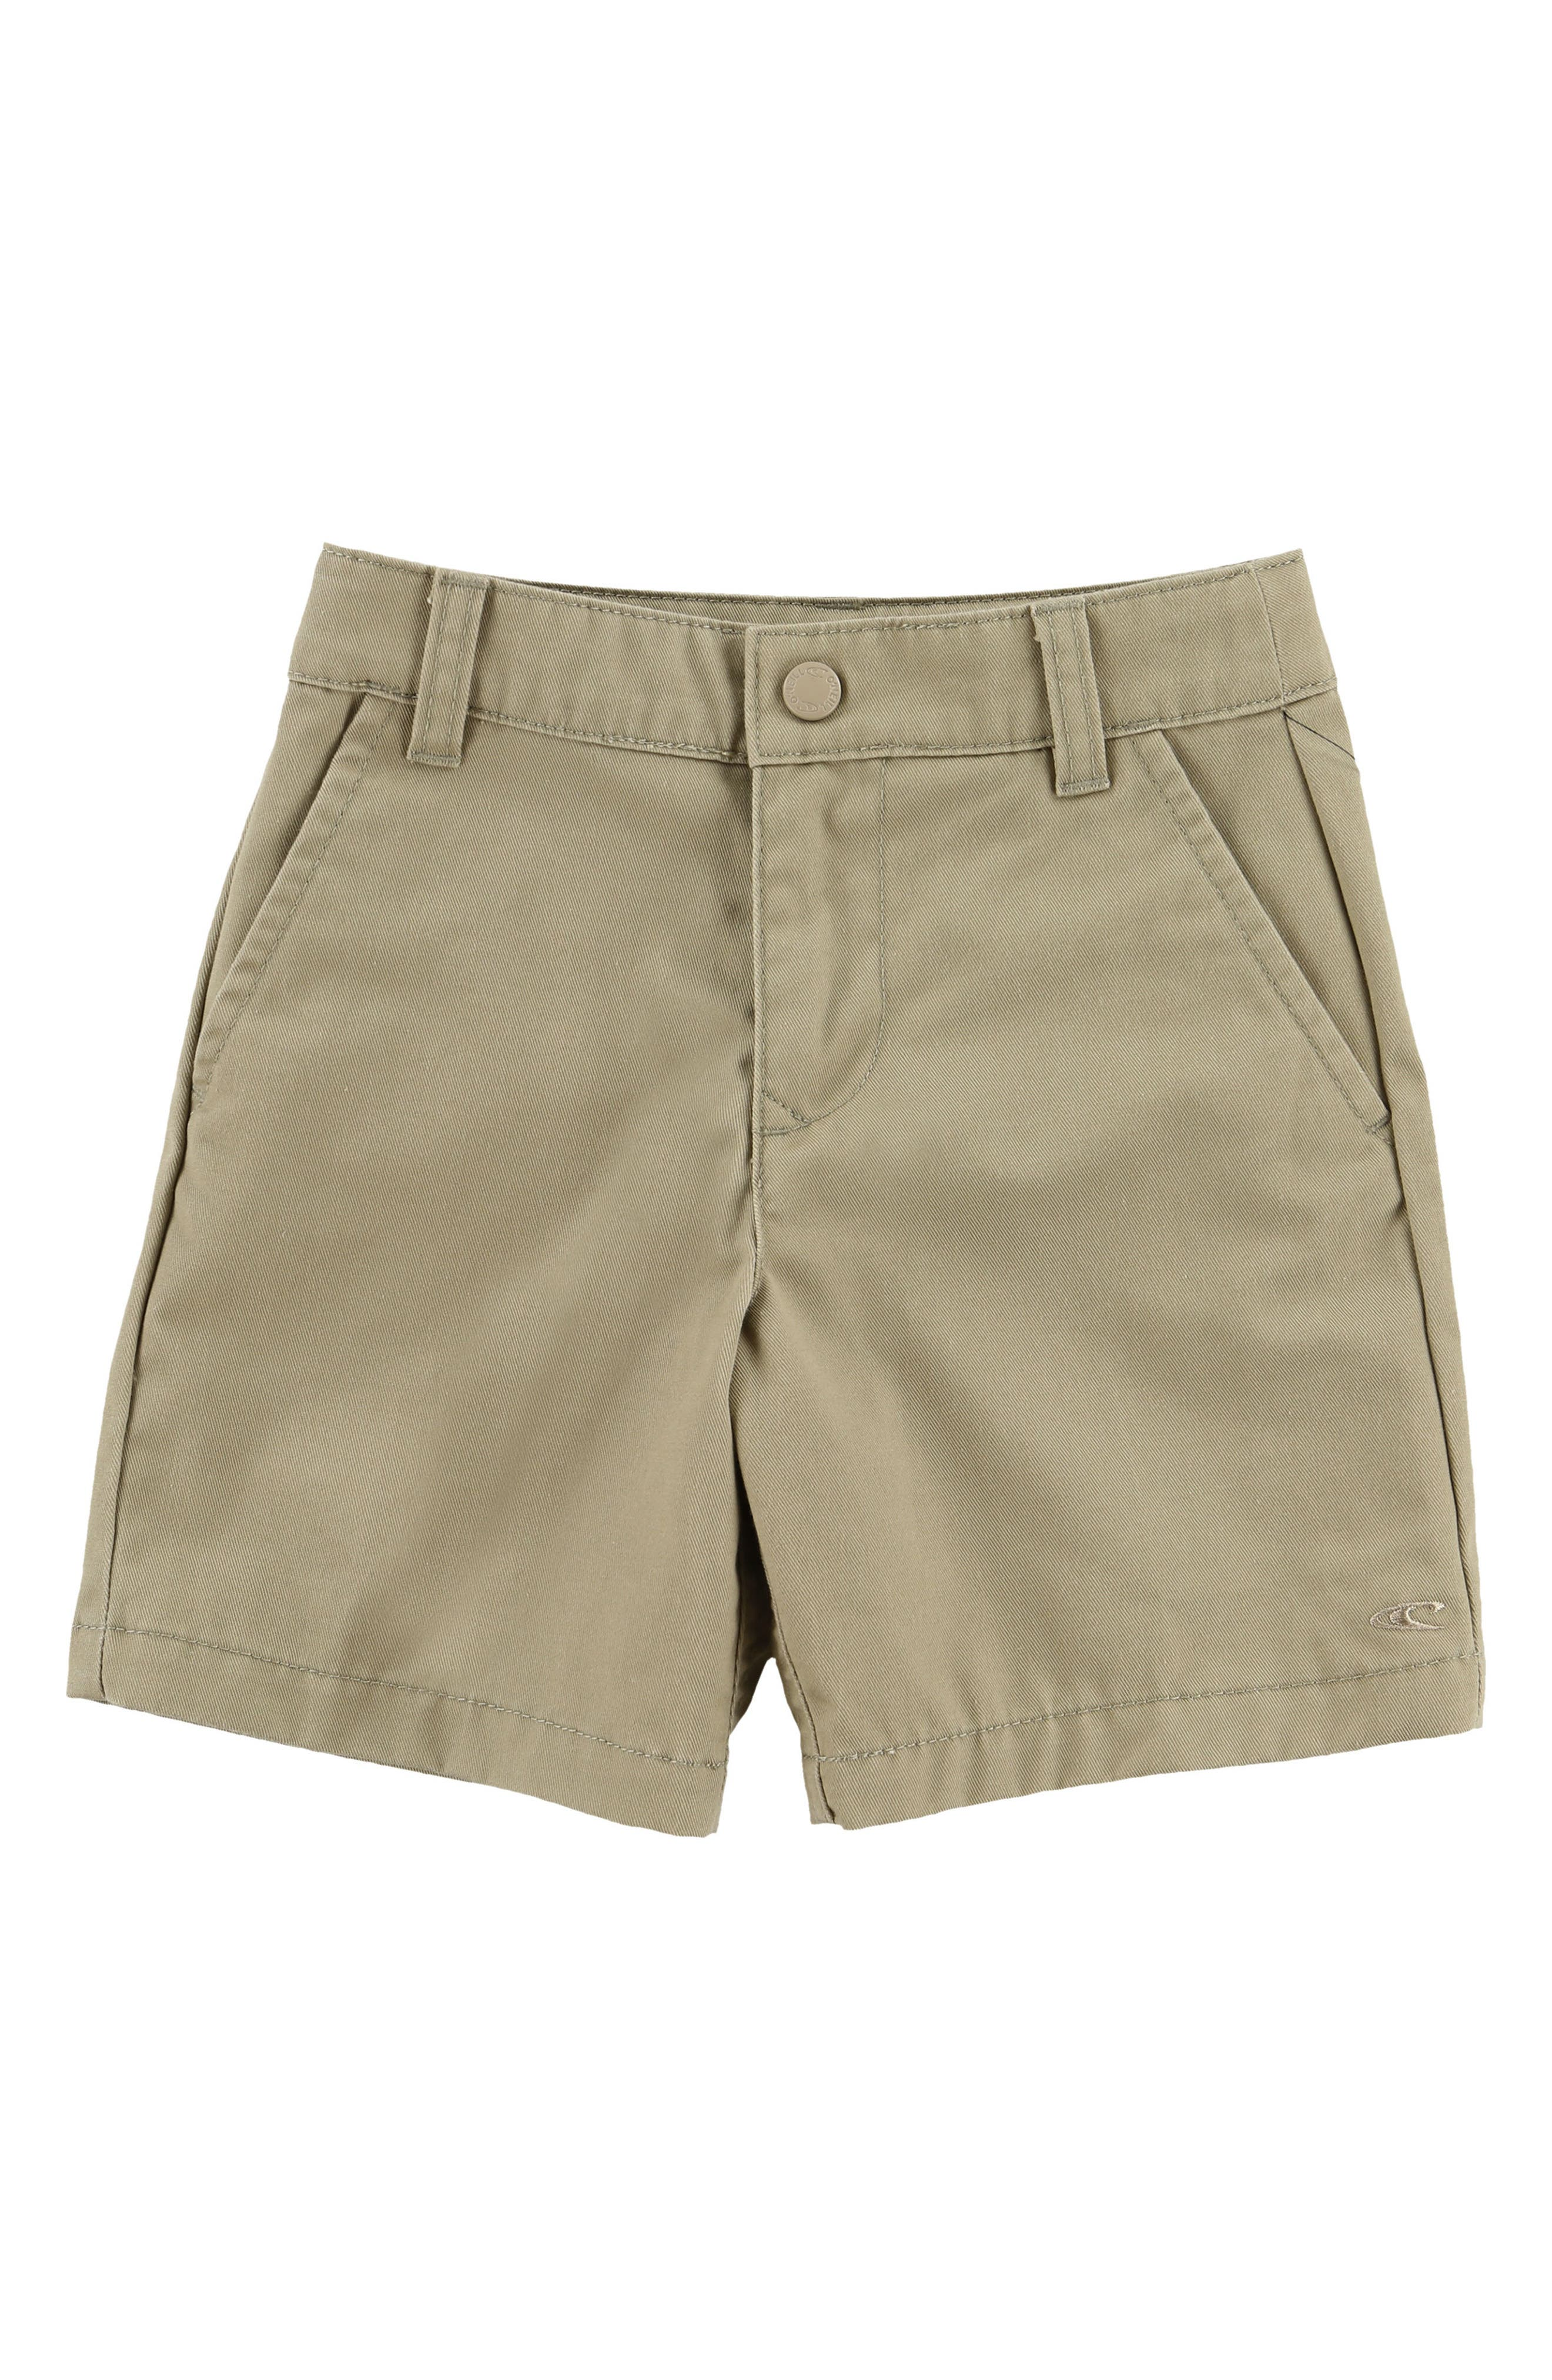 O'Neill Contact Twill Walking Shorts (Toddler Boys)